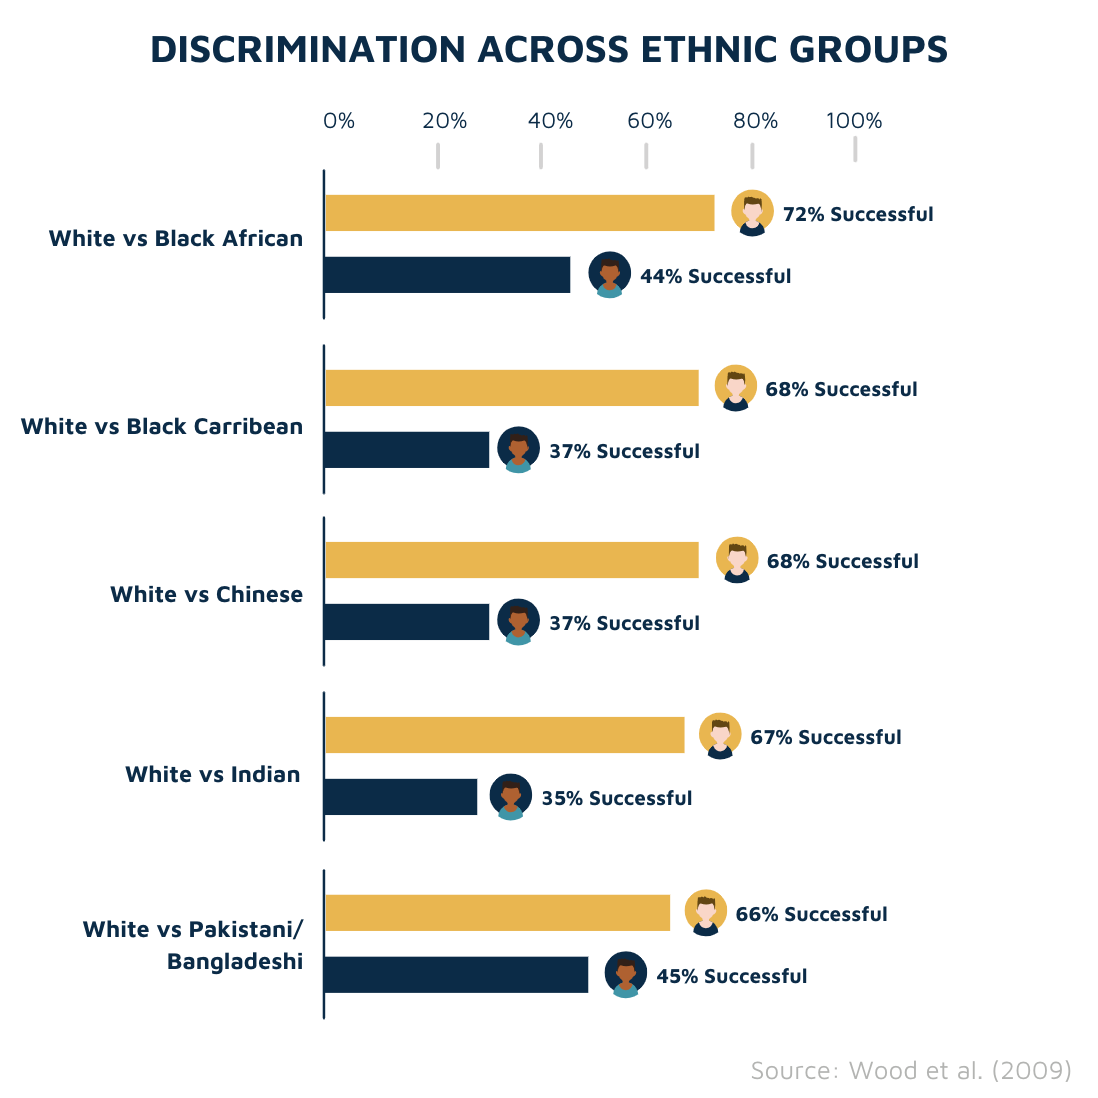 Discrimination across ethnic groups